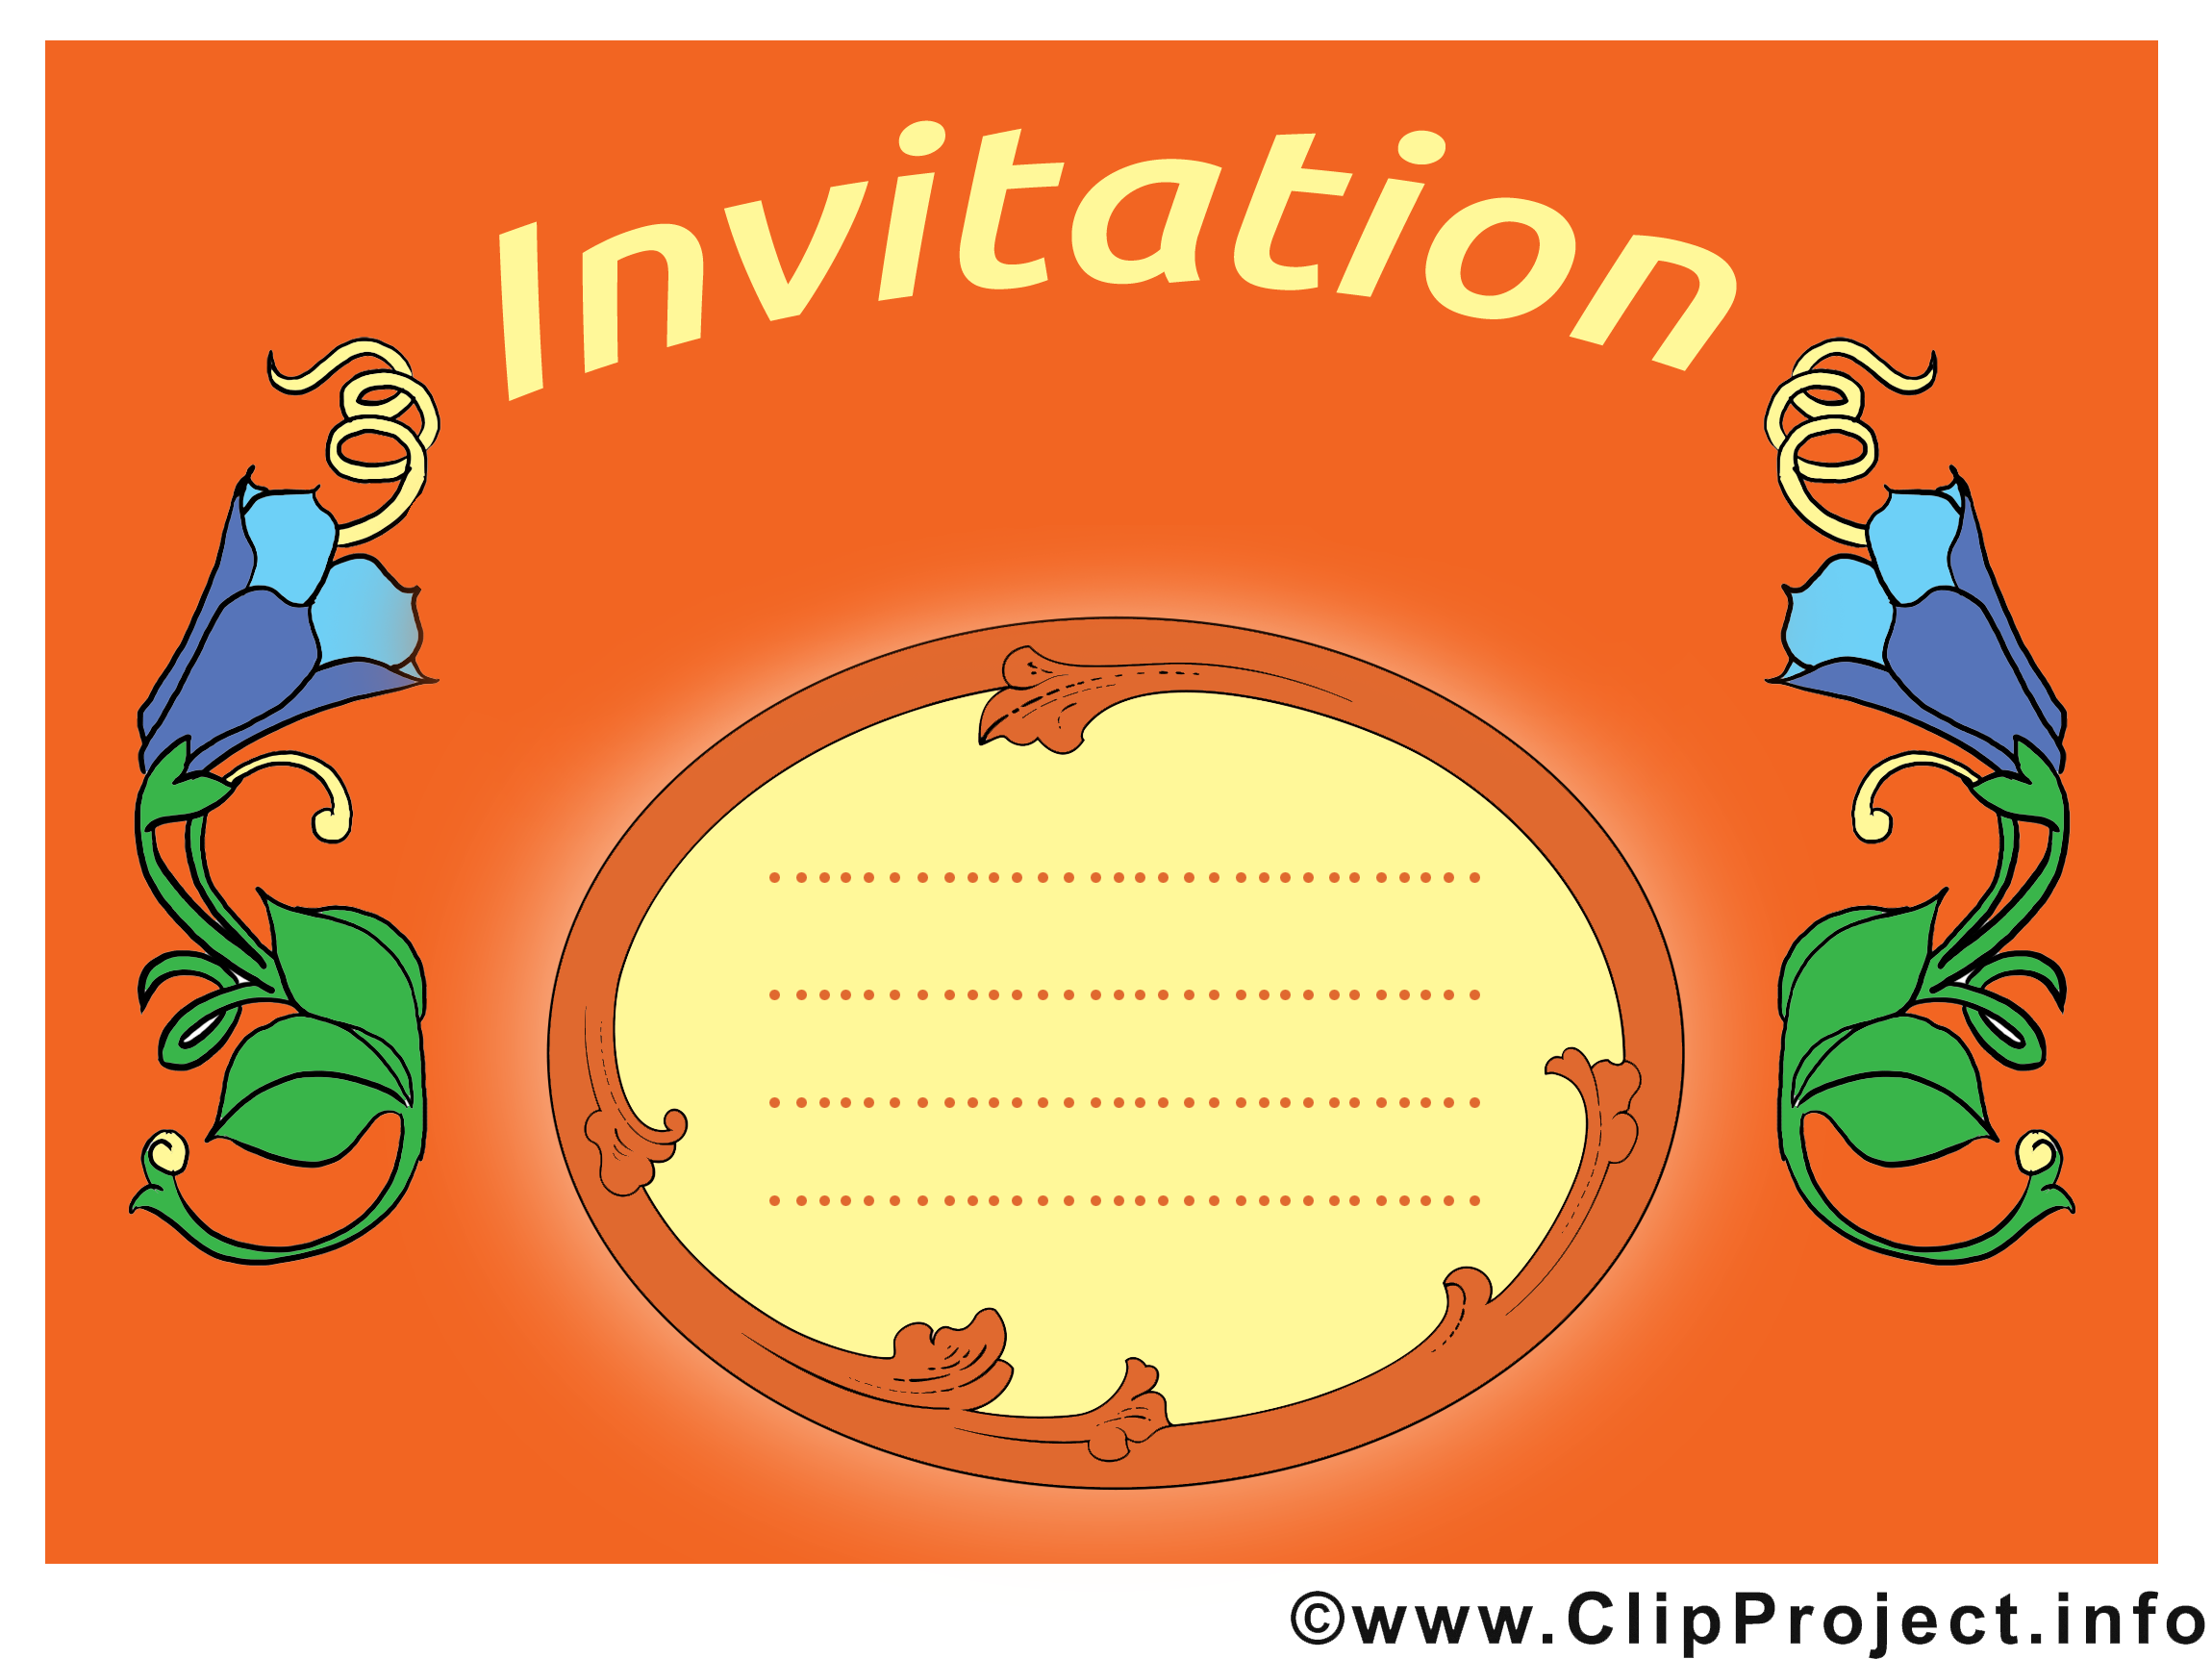 Clochettes illustration - Invitation images